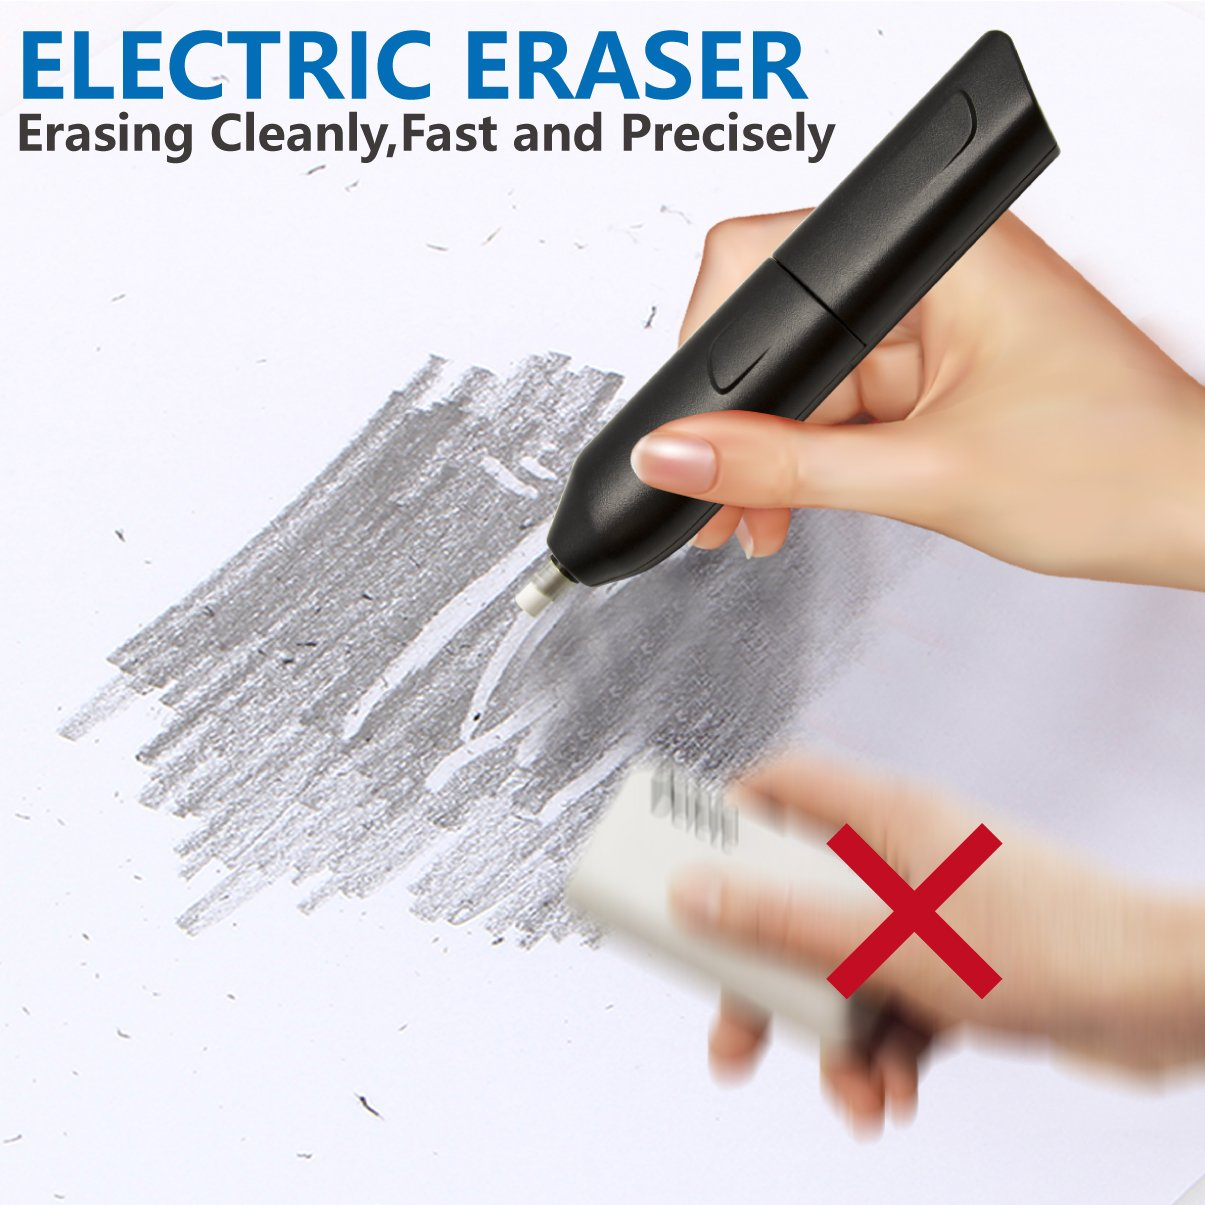 Electric Eraser Kit, LOVIN PRODUCT Automatic Portable Rubber Eraser with 20 Eraser Refills and 1 Eraser Brush, Battery Operated for Classroom, Office, School, Kids, Teachers, Artists. (2 PACK) by LOVIN PRODUCT (Image #1)